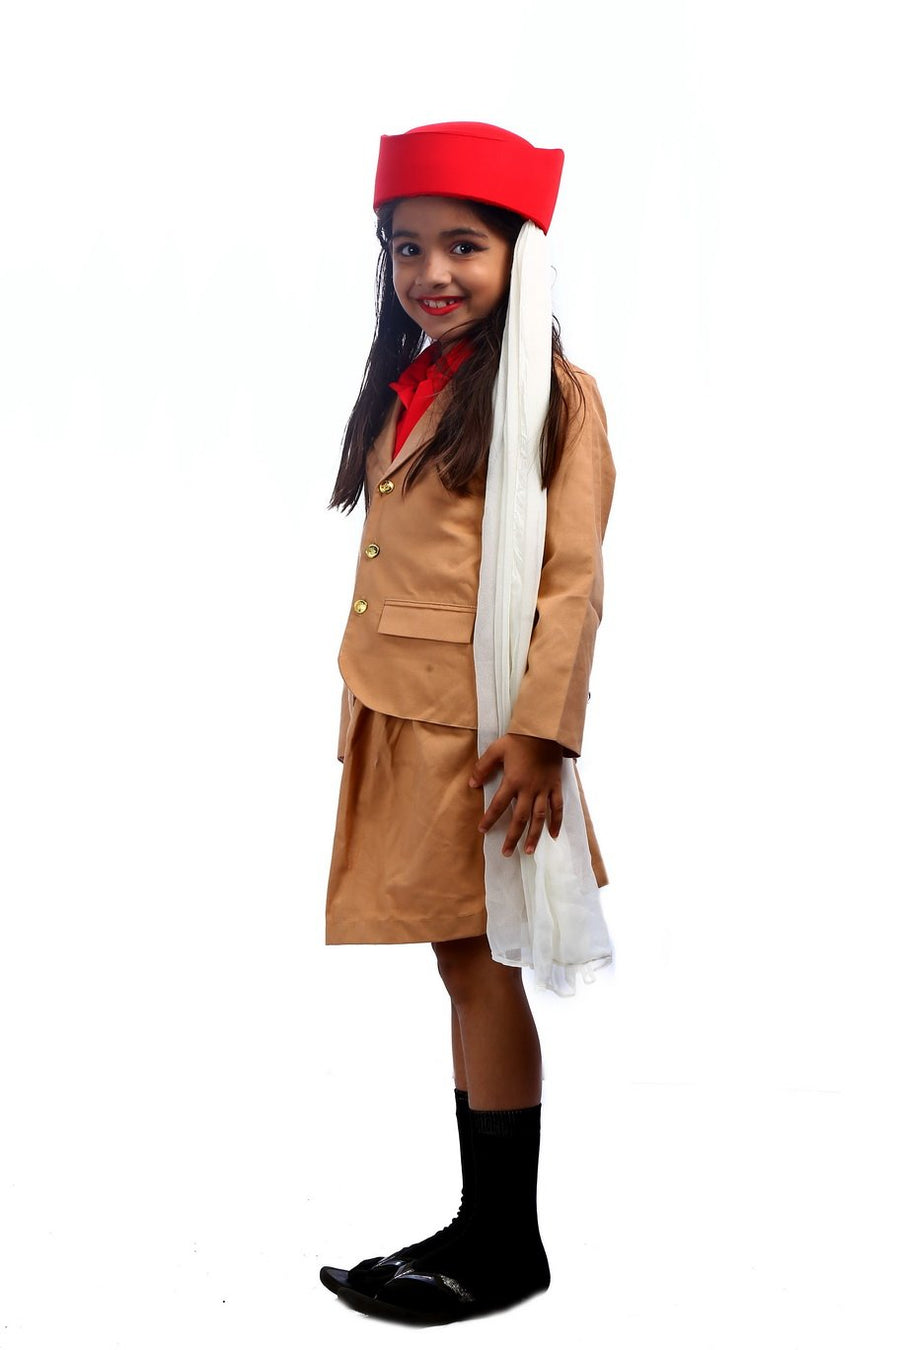 SBD Air Hostess Crew Member at Emirates Community Helper  Costume